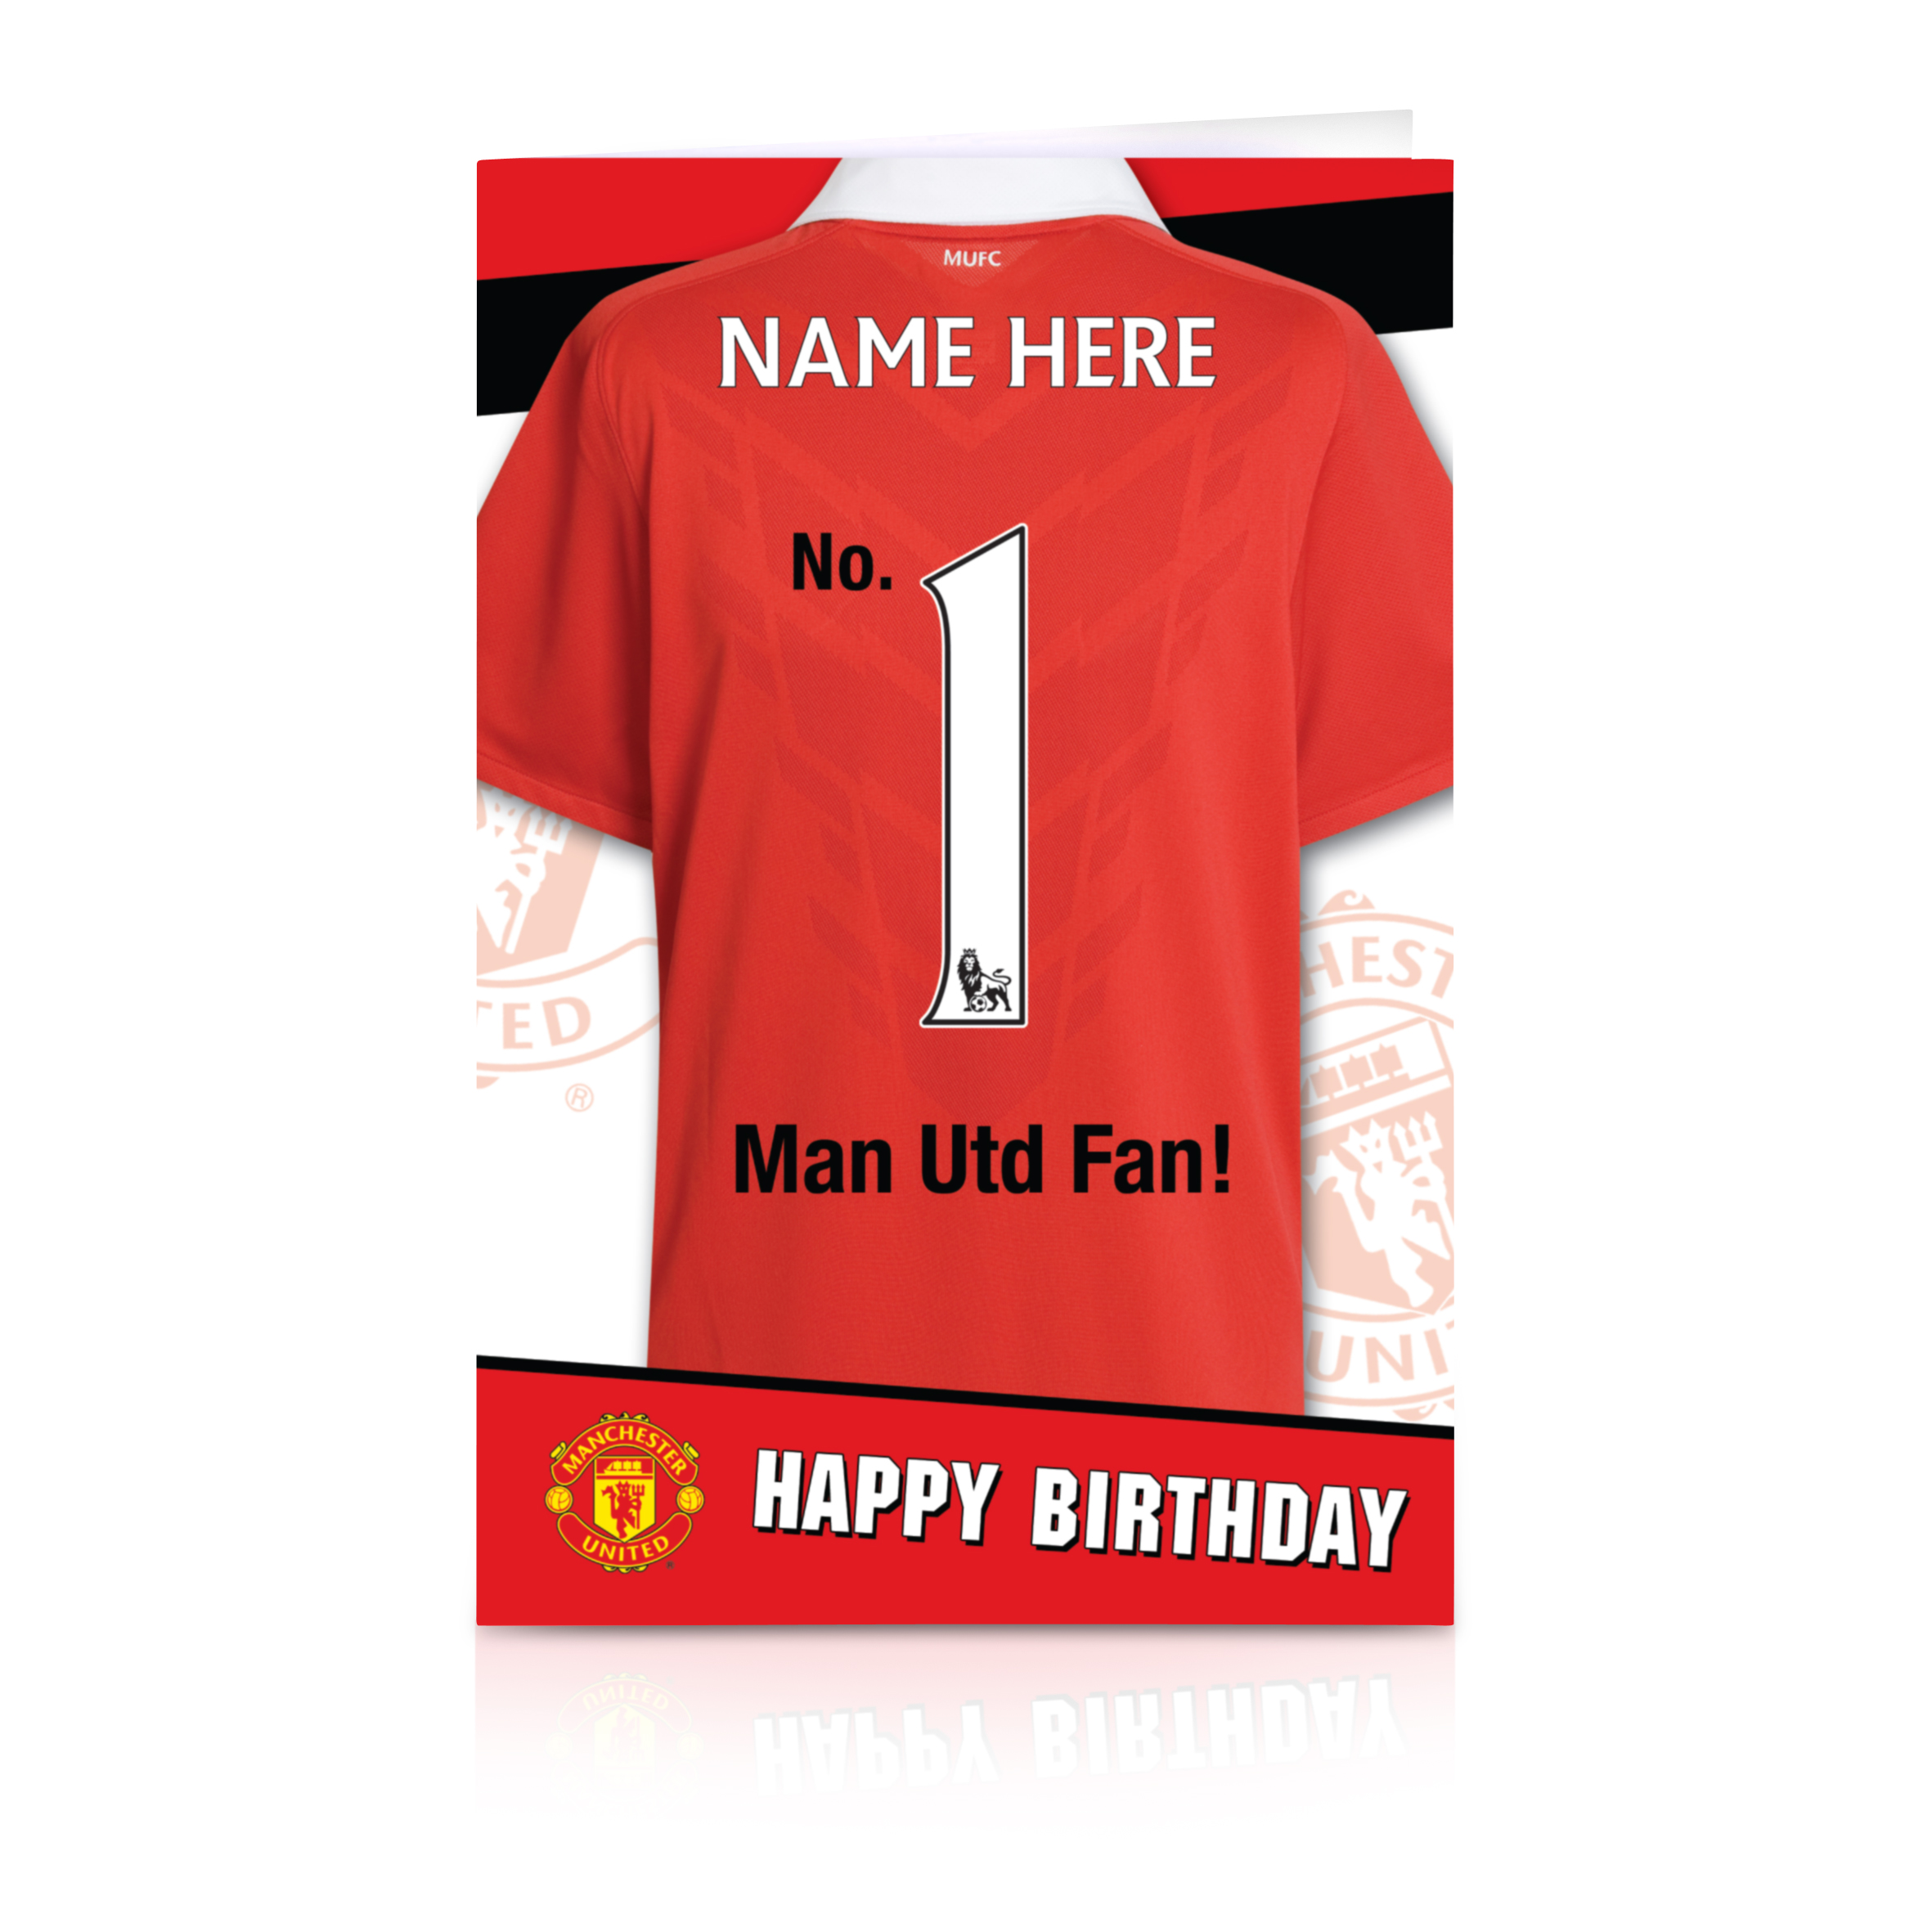 Manchester United Personalised Happy Birthday Card - No. 1 Fan!